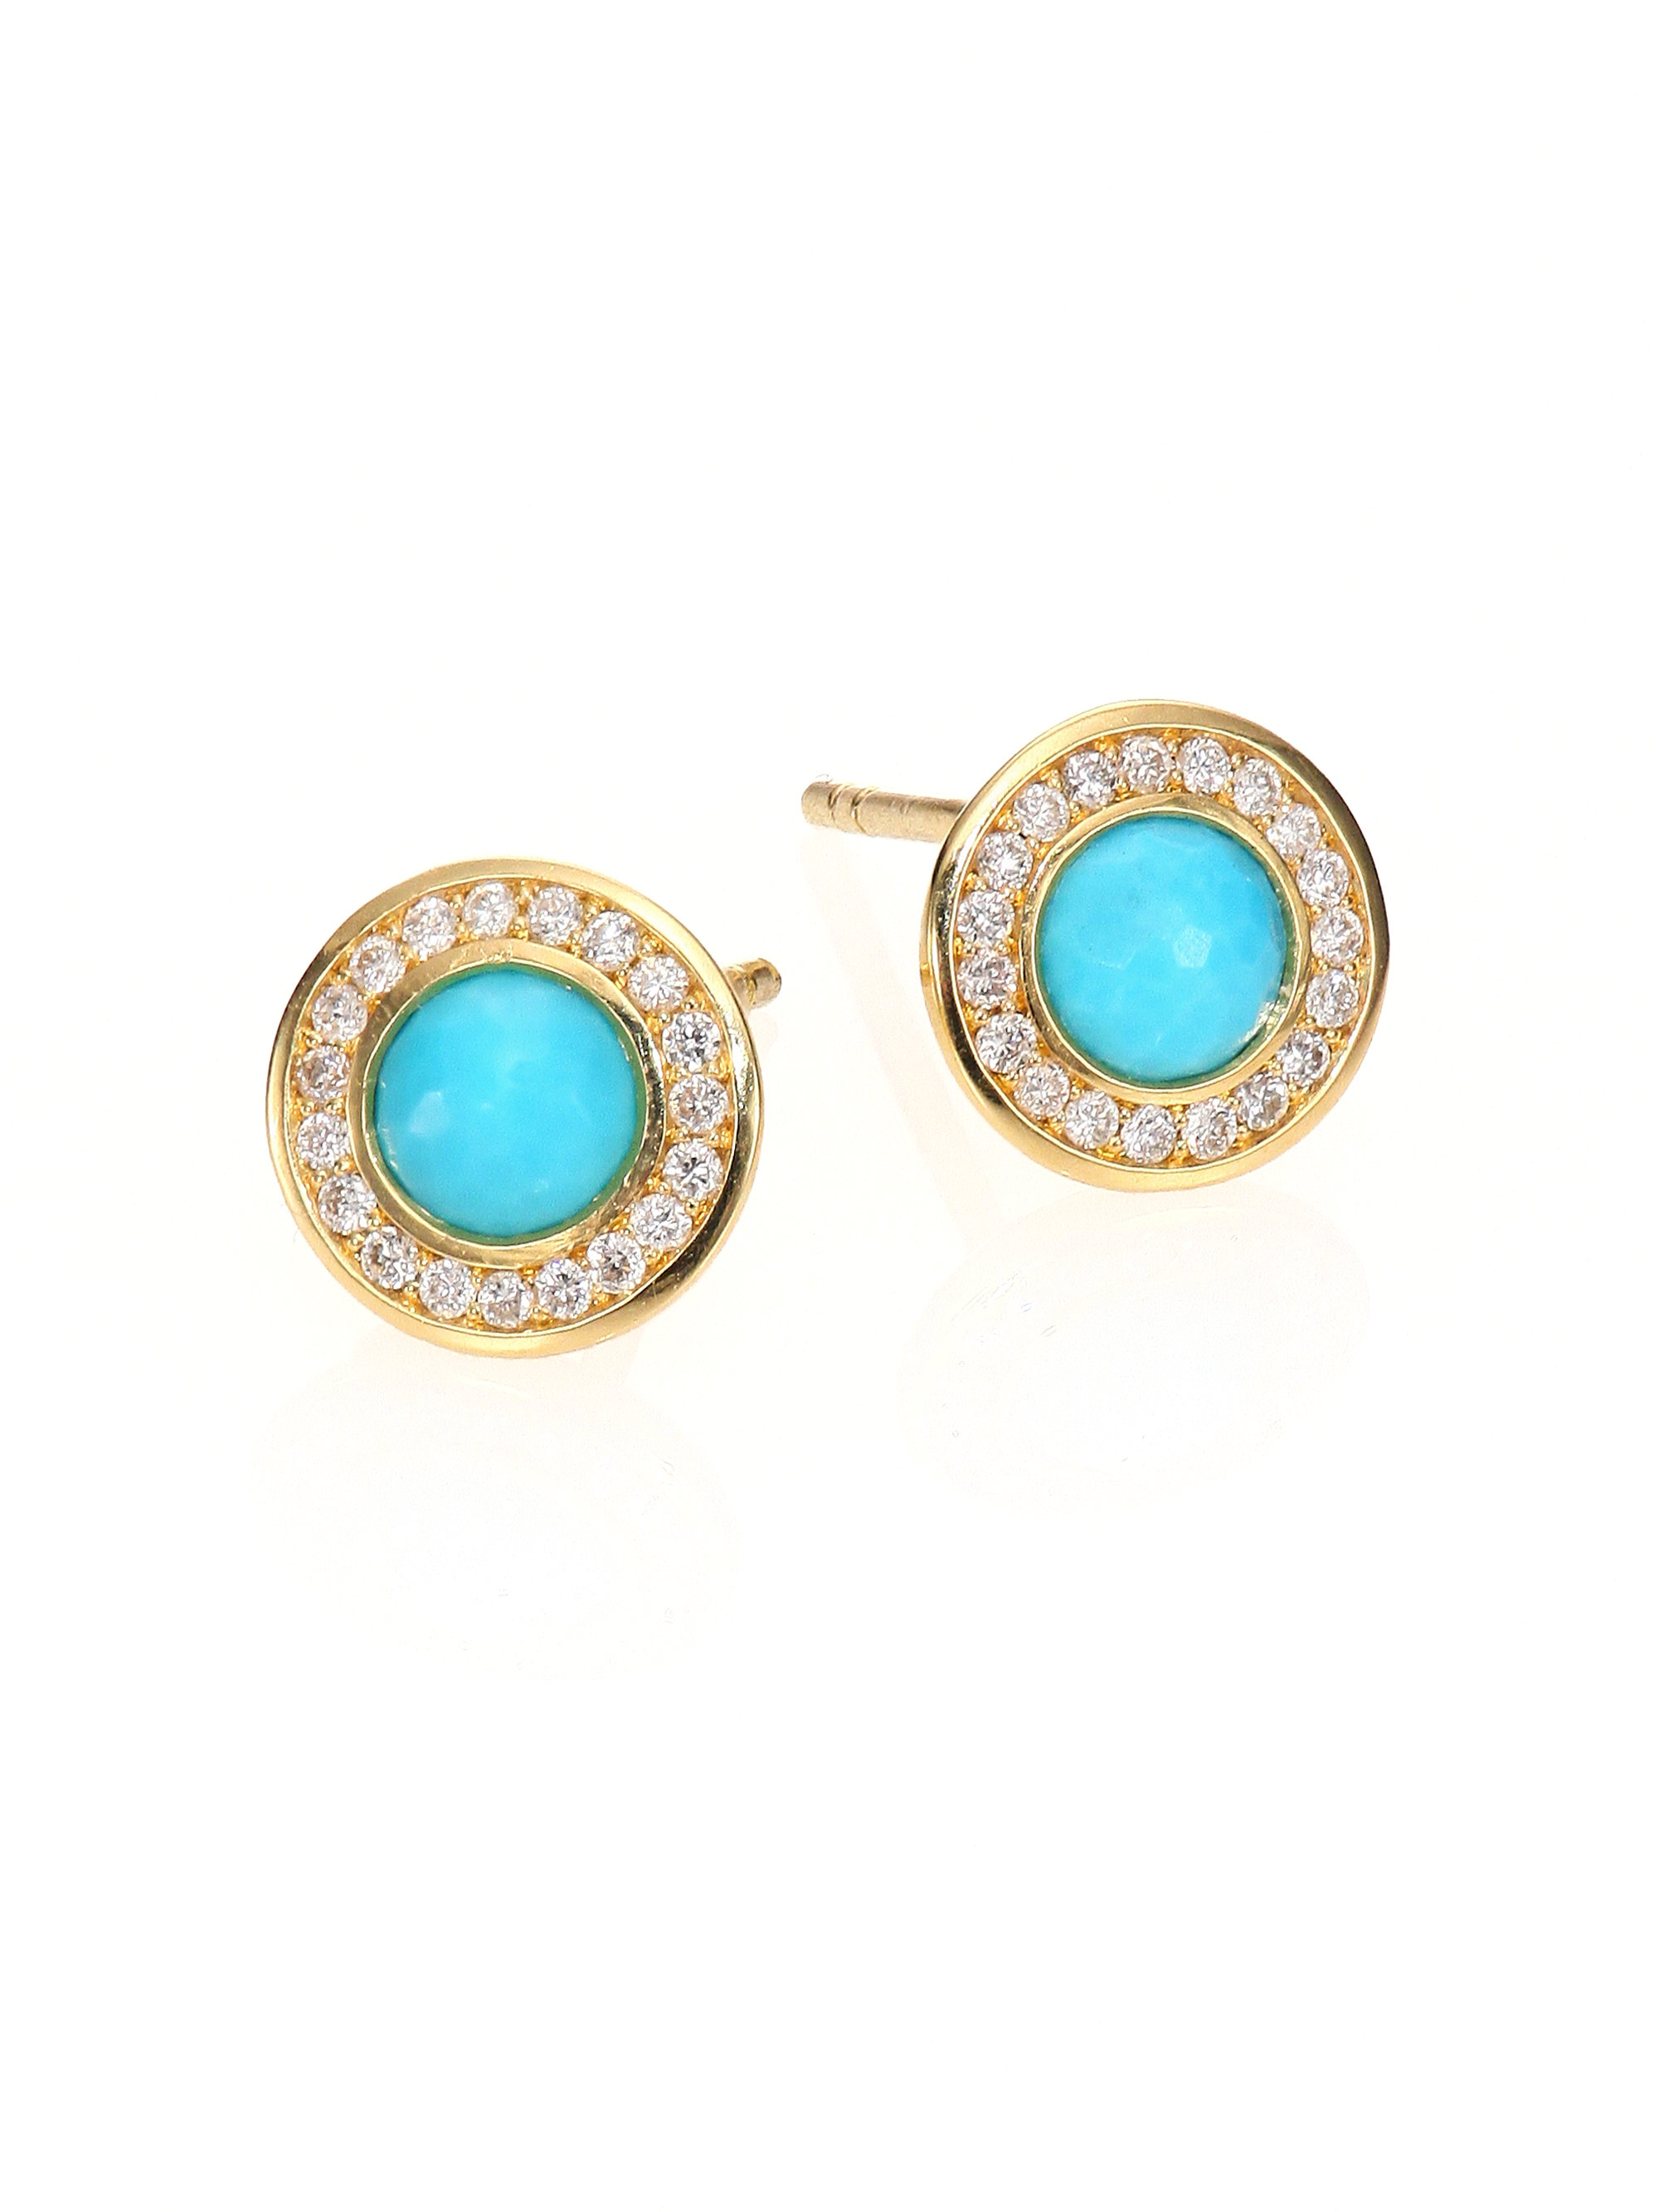 pin the to etsy stud earrings share excited my addition shop turquoise latest